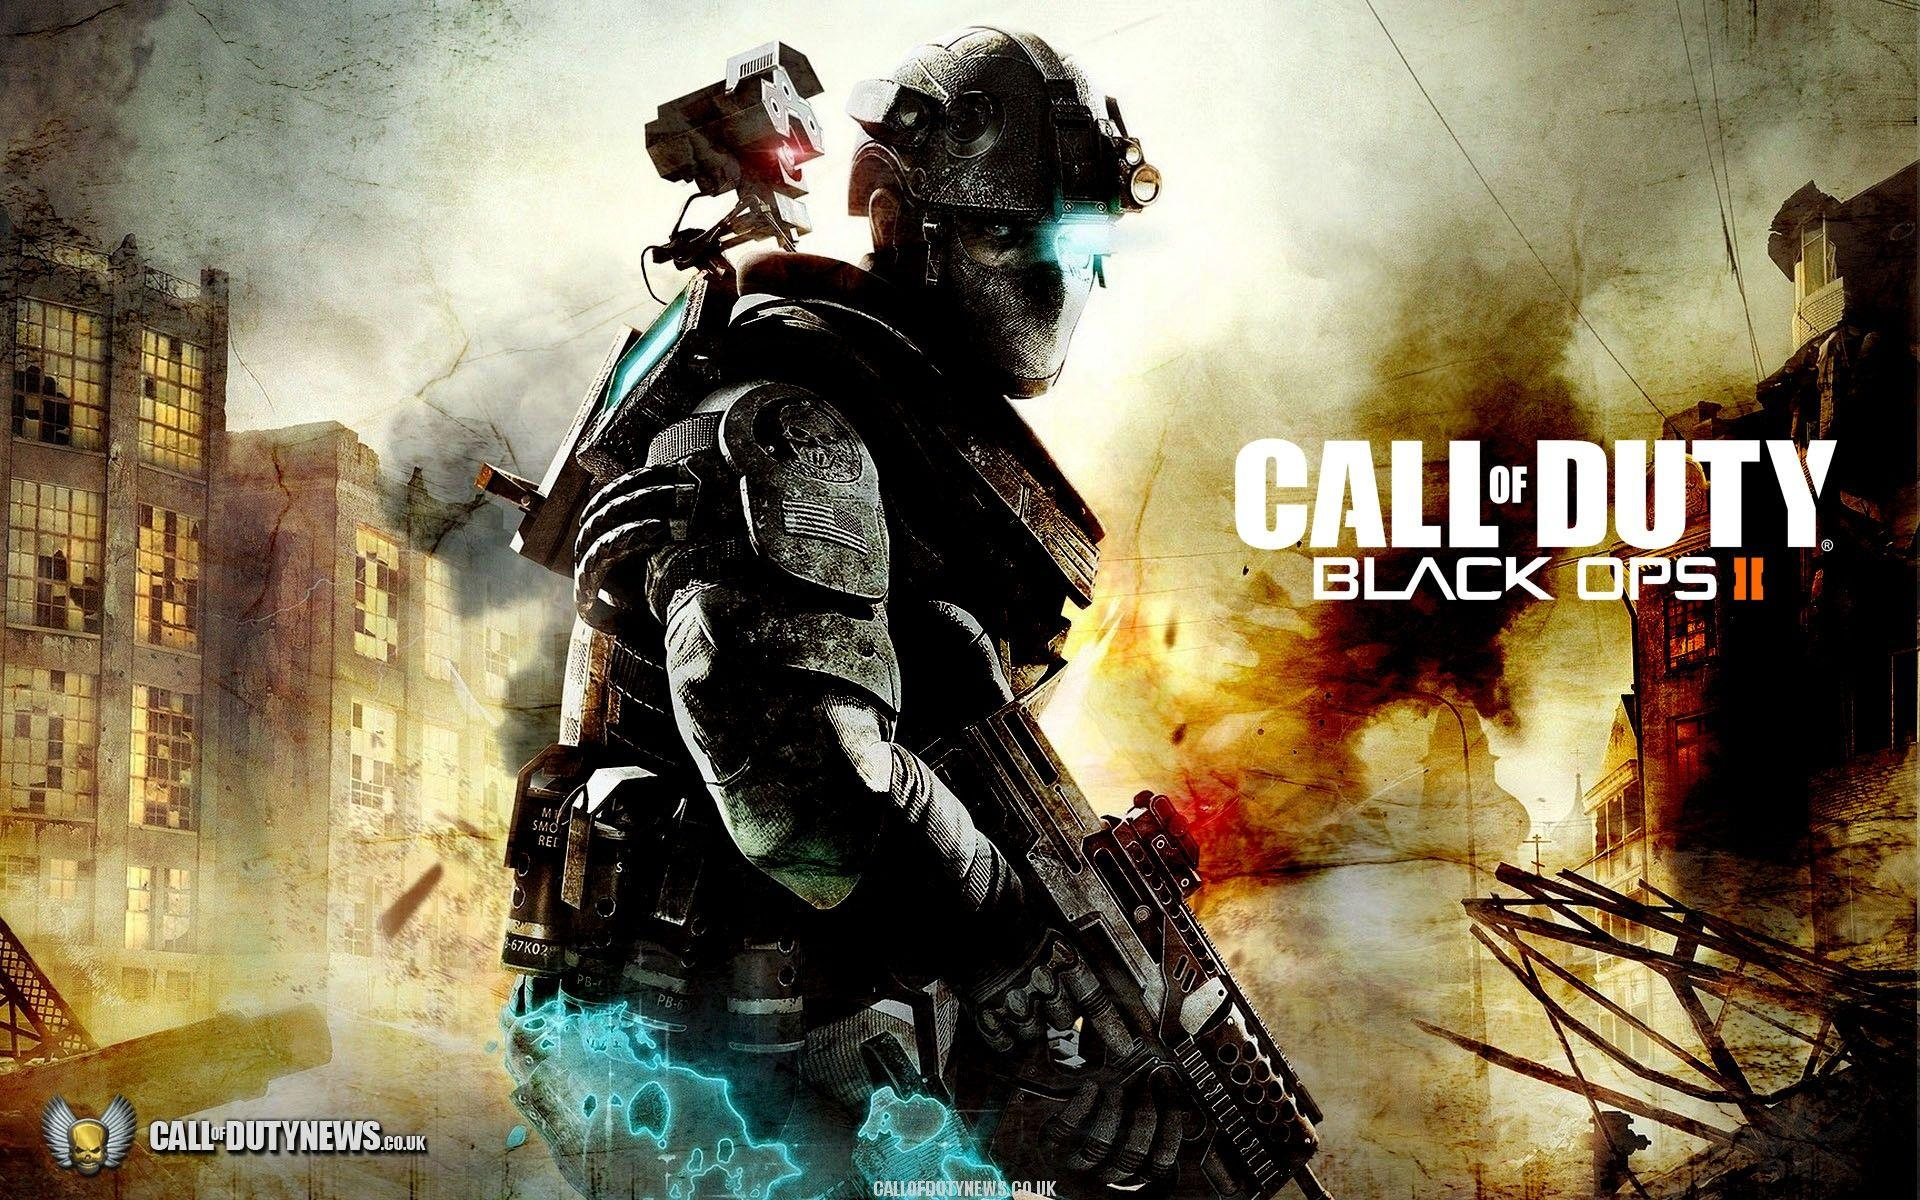 Call Of Duty Wallpapers Zombies on MarkInternational.info